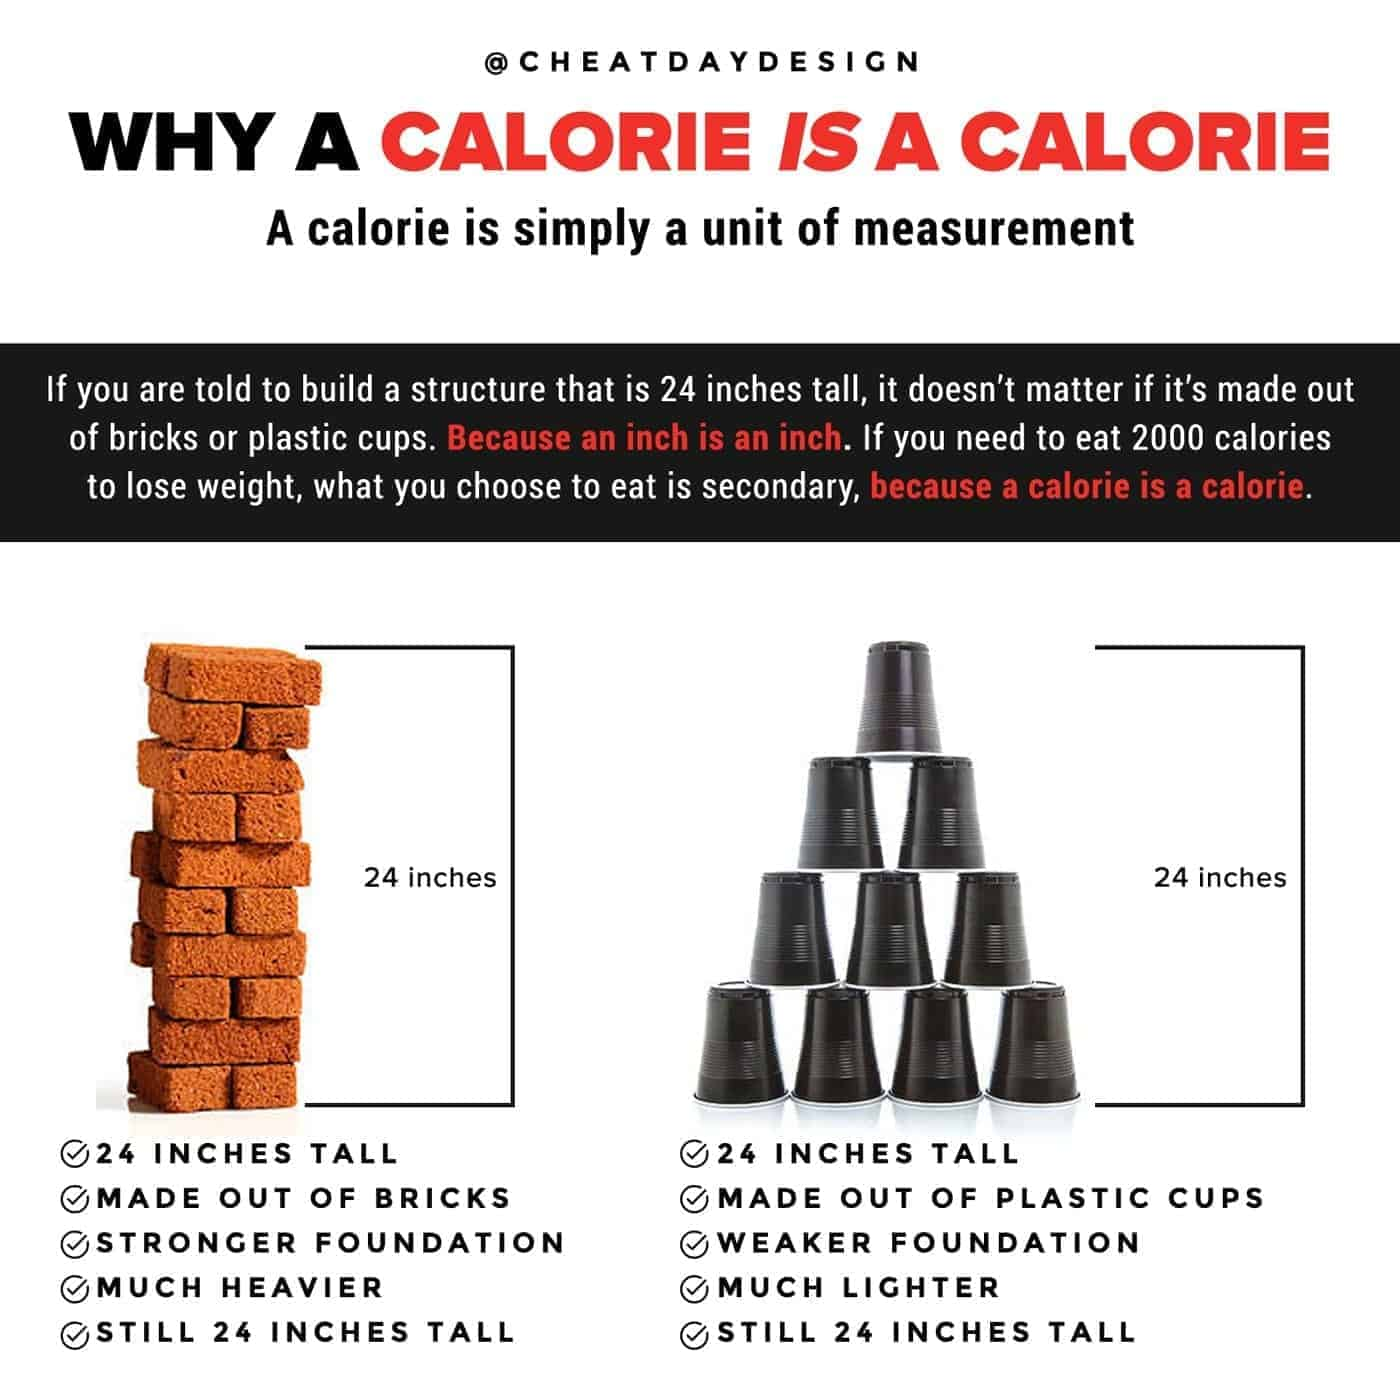 Why a calorie IS actually a calorie